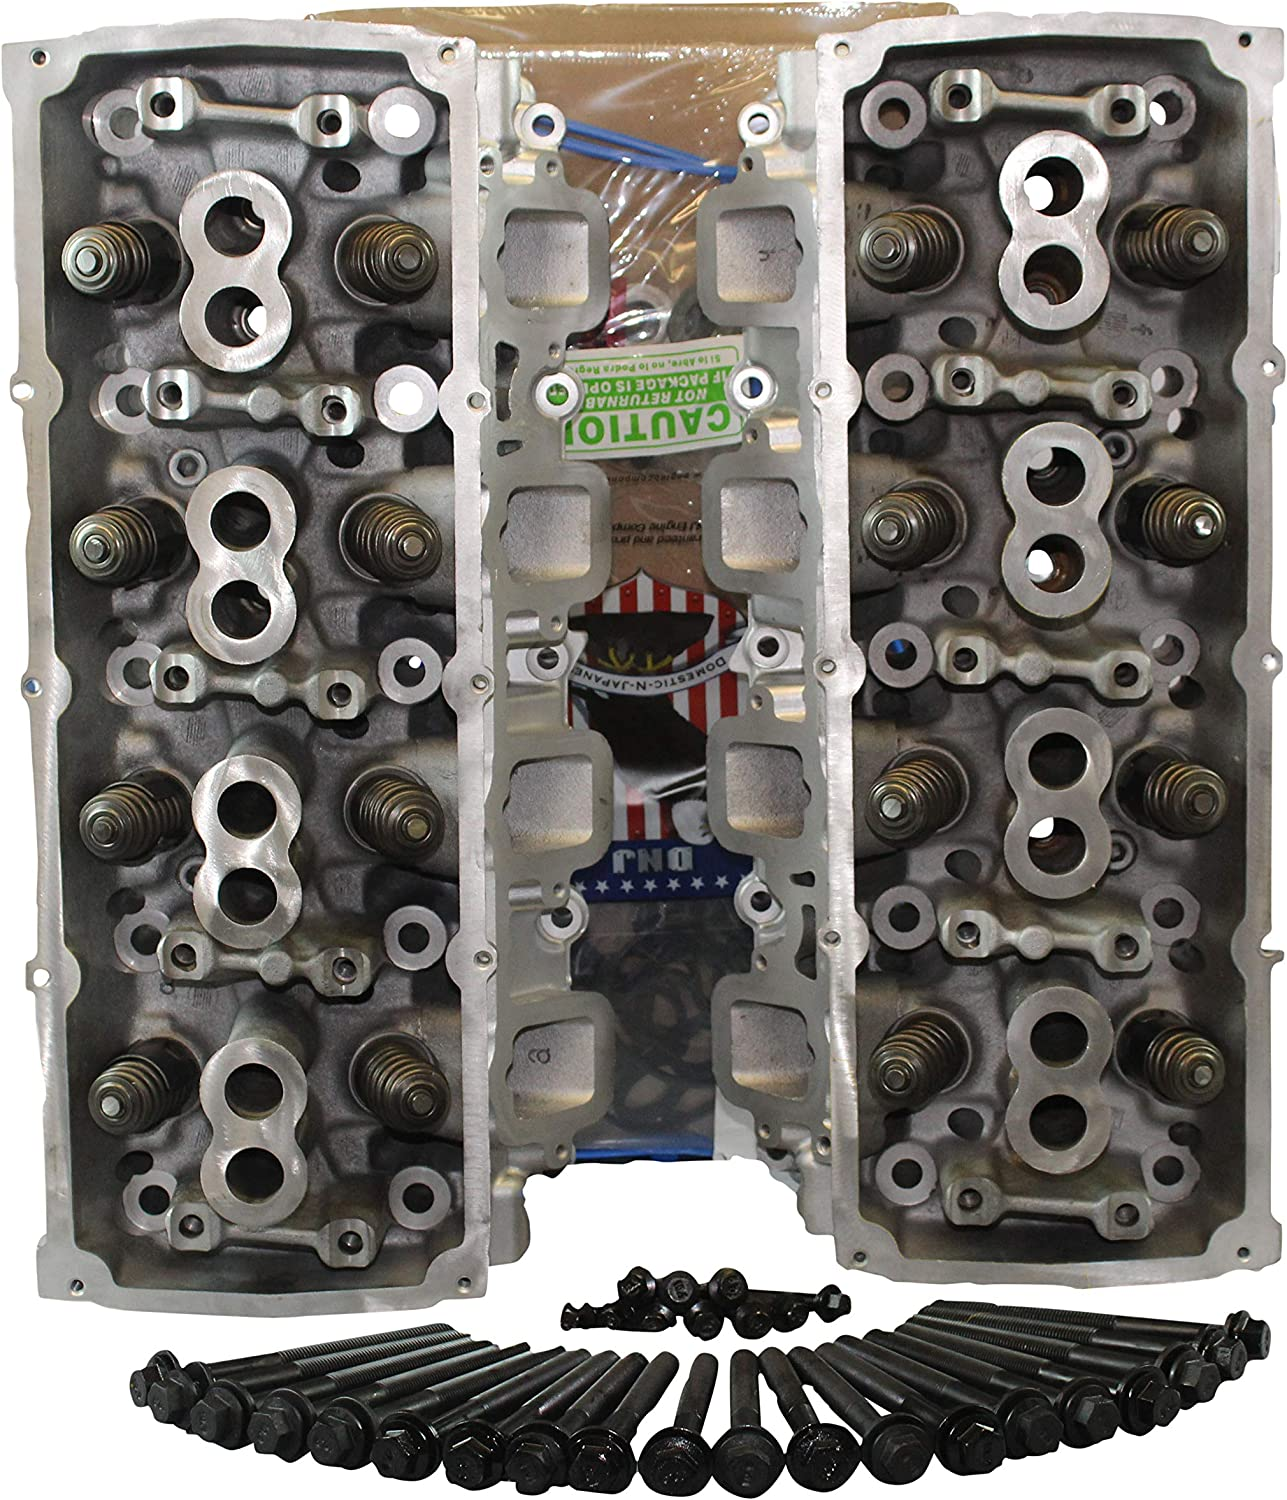 Amazon Com Remanufactured Cylinder Heads For 5 7 Ohv V8 Hemi Charger Challenger 300c Cherokee W Head Gasket Set Head Bolts Core Return Required Automotive